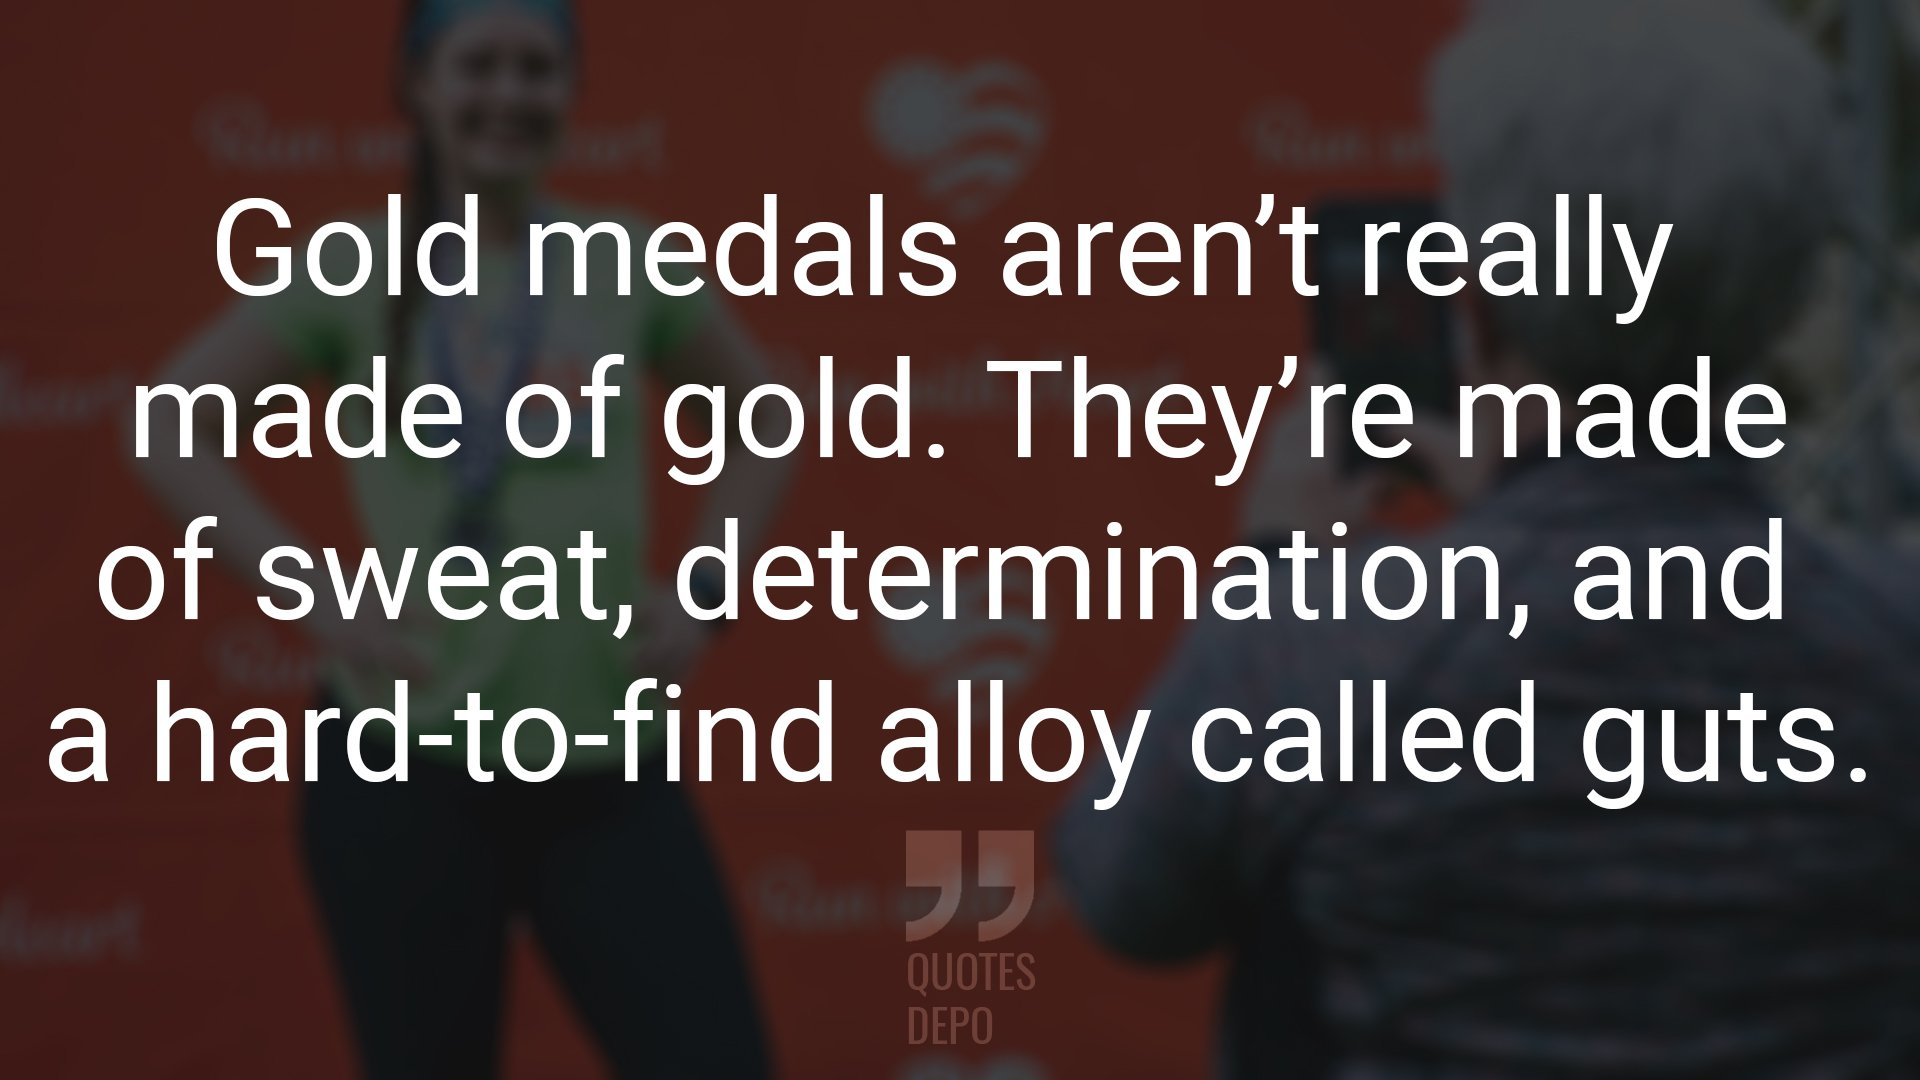 Gold Medals Aren't Really Made of Gold